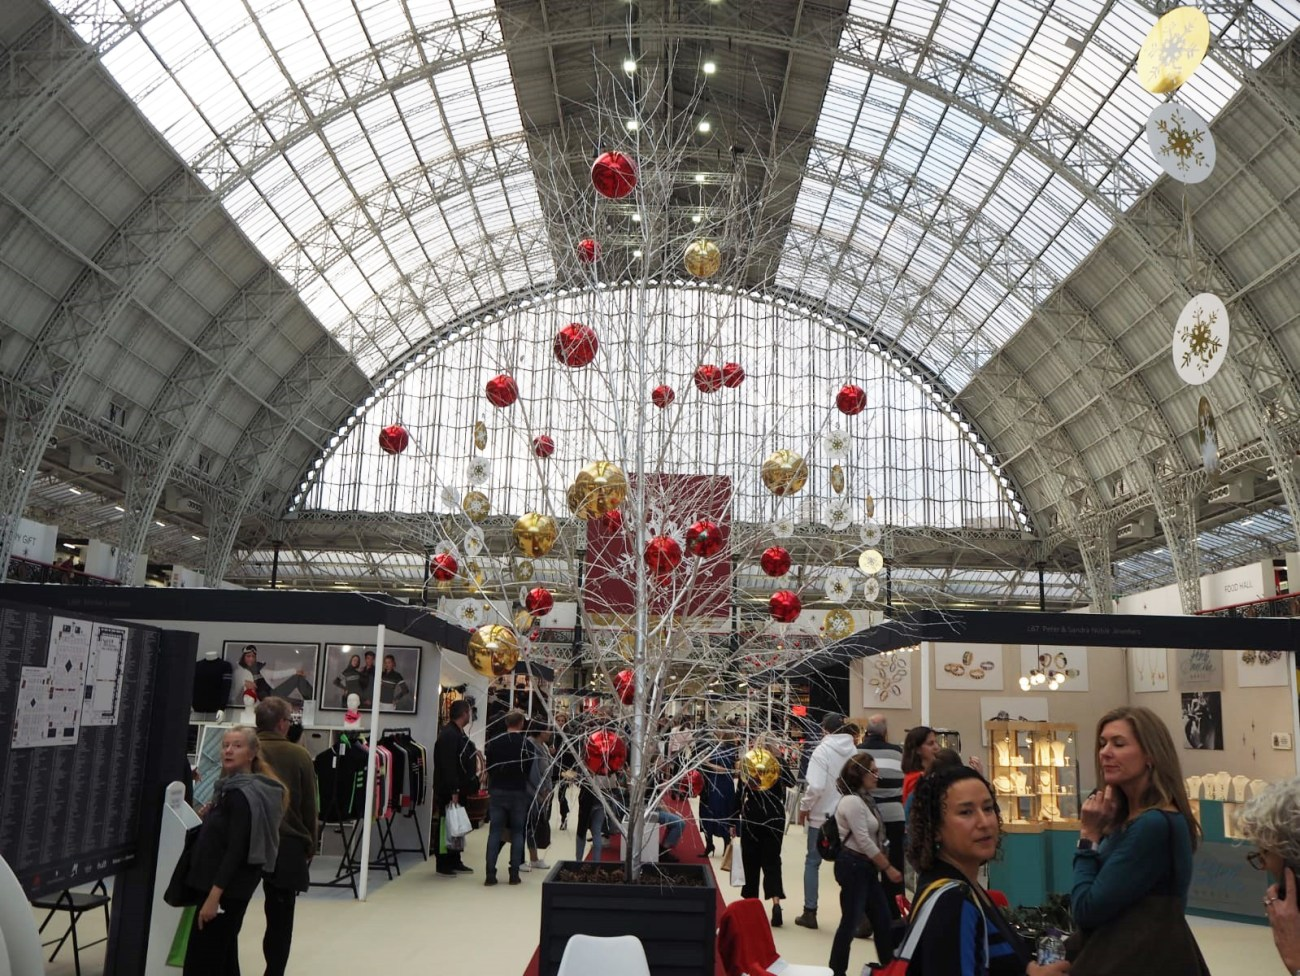 Ground view of the fair with a silver sparkly tree in the middle, red and gold baubles hung sporadically